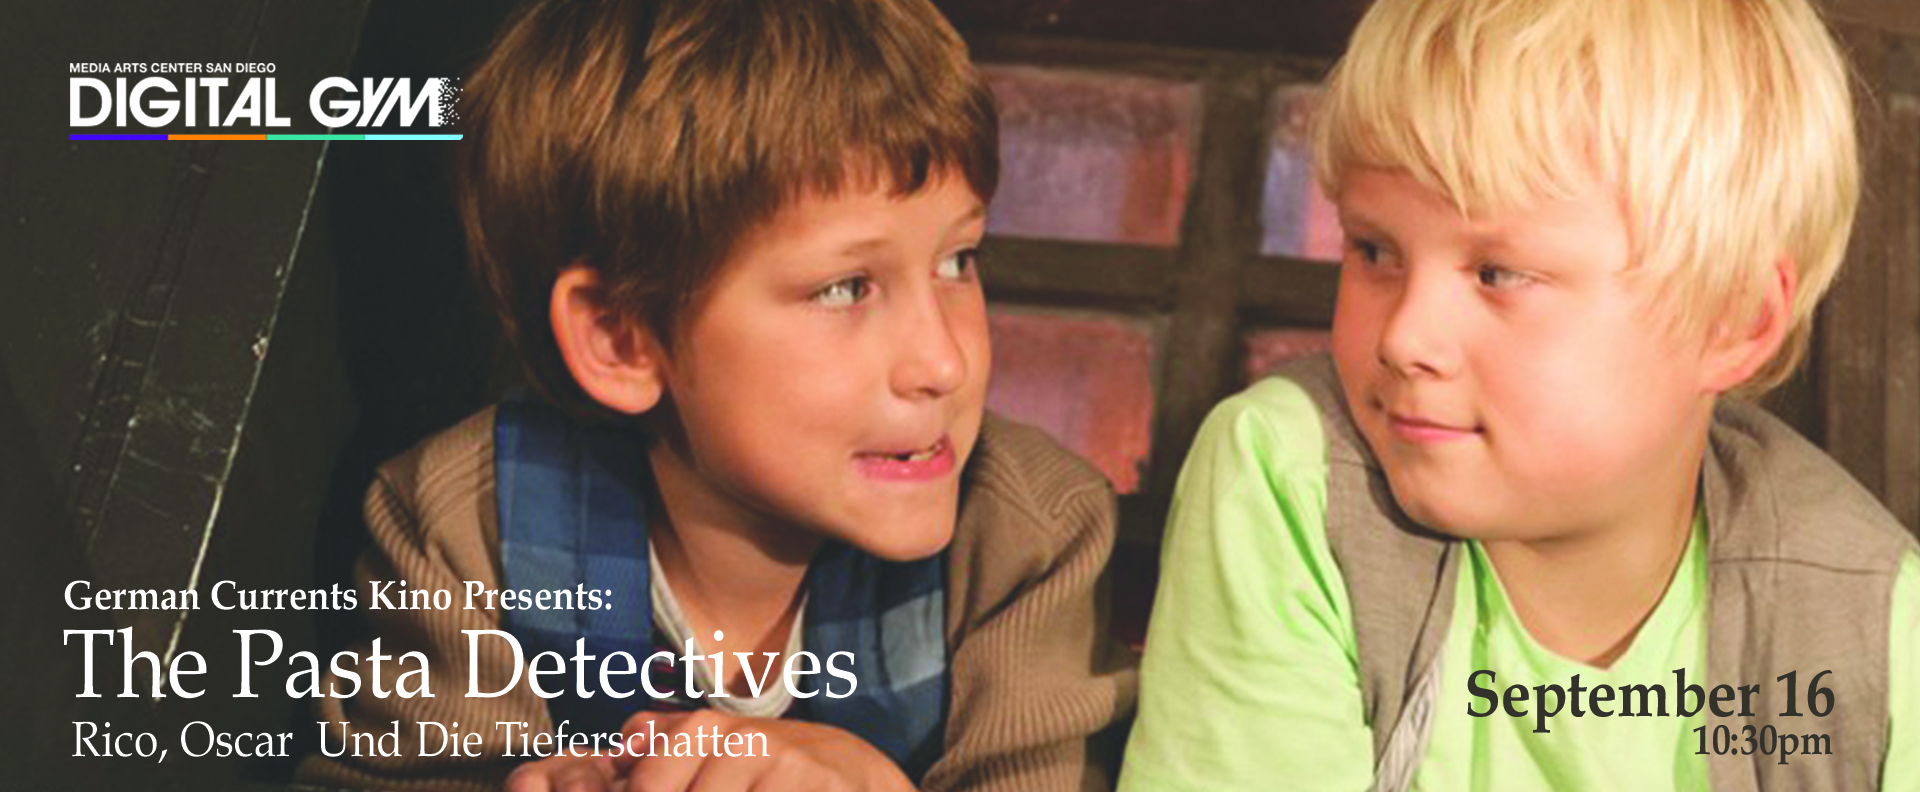 German Currents Kino Presents: The Pasta Detectives (Rico, Oskar UND DIE TIEFERSCHATTEN) (September 16)